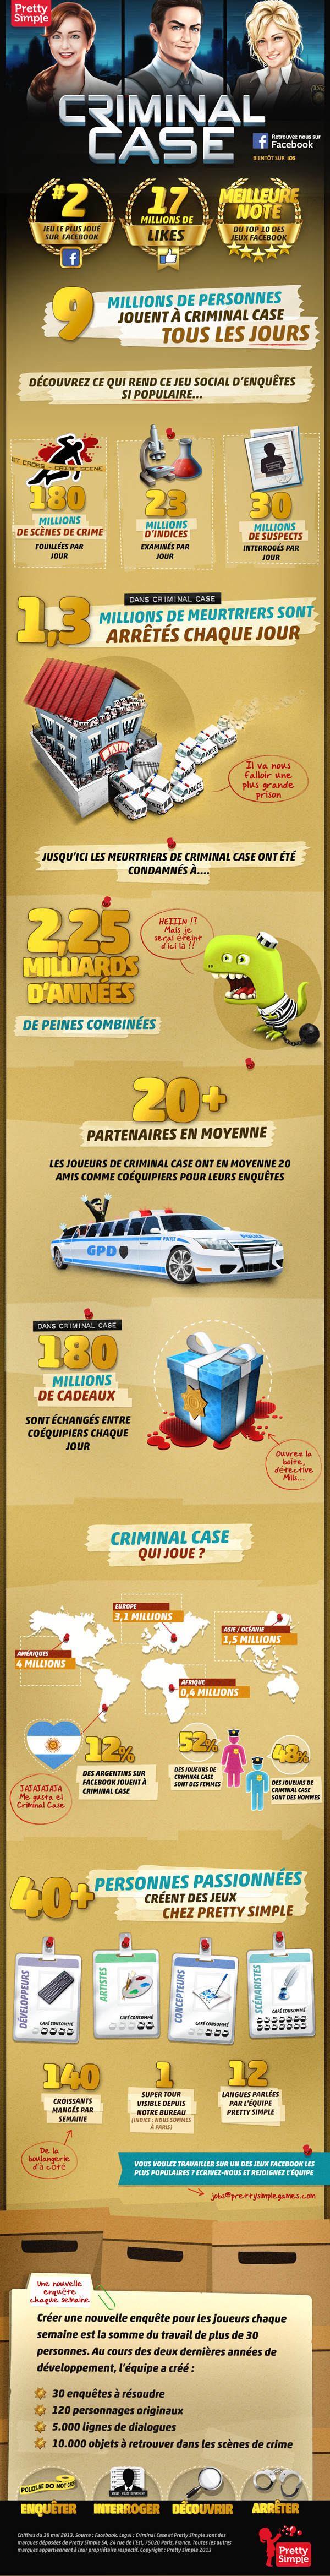 Infographie Criminal Case de Pretty Simple